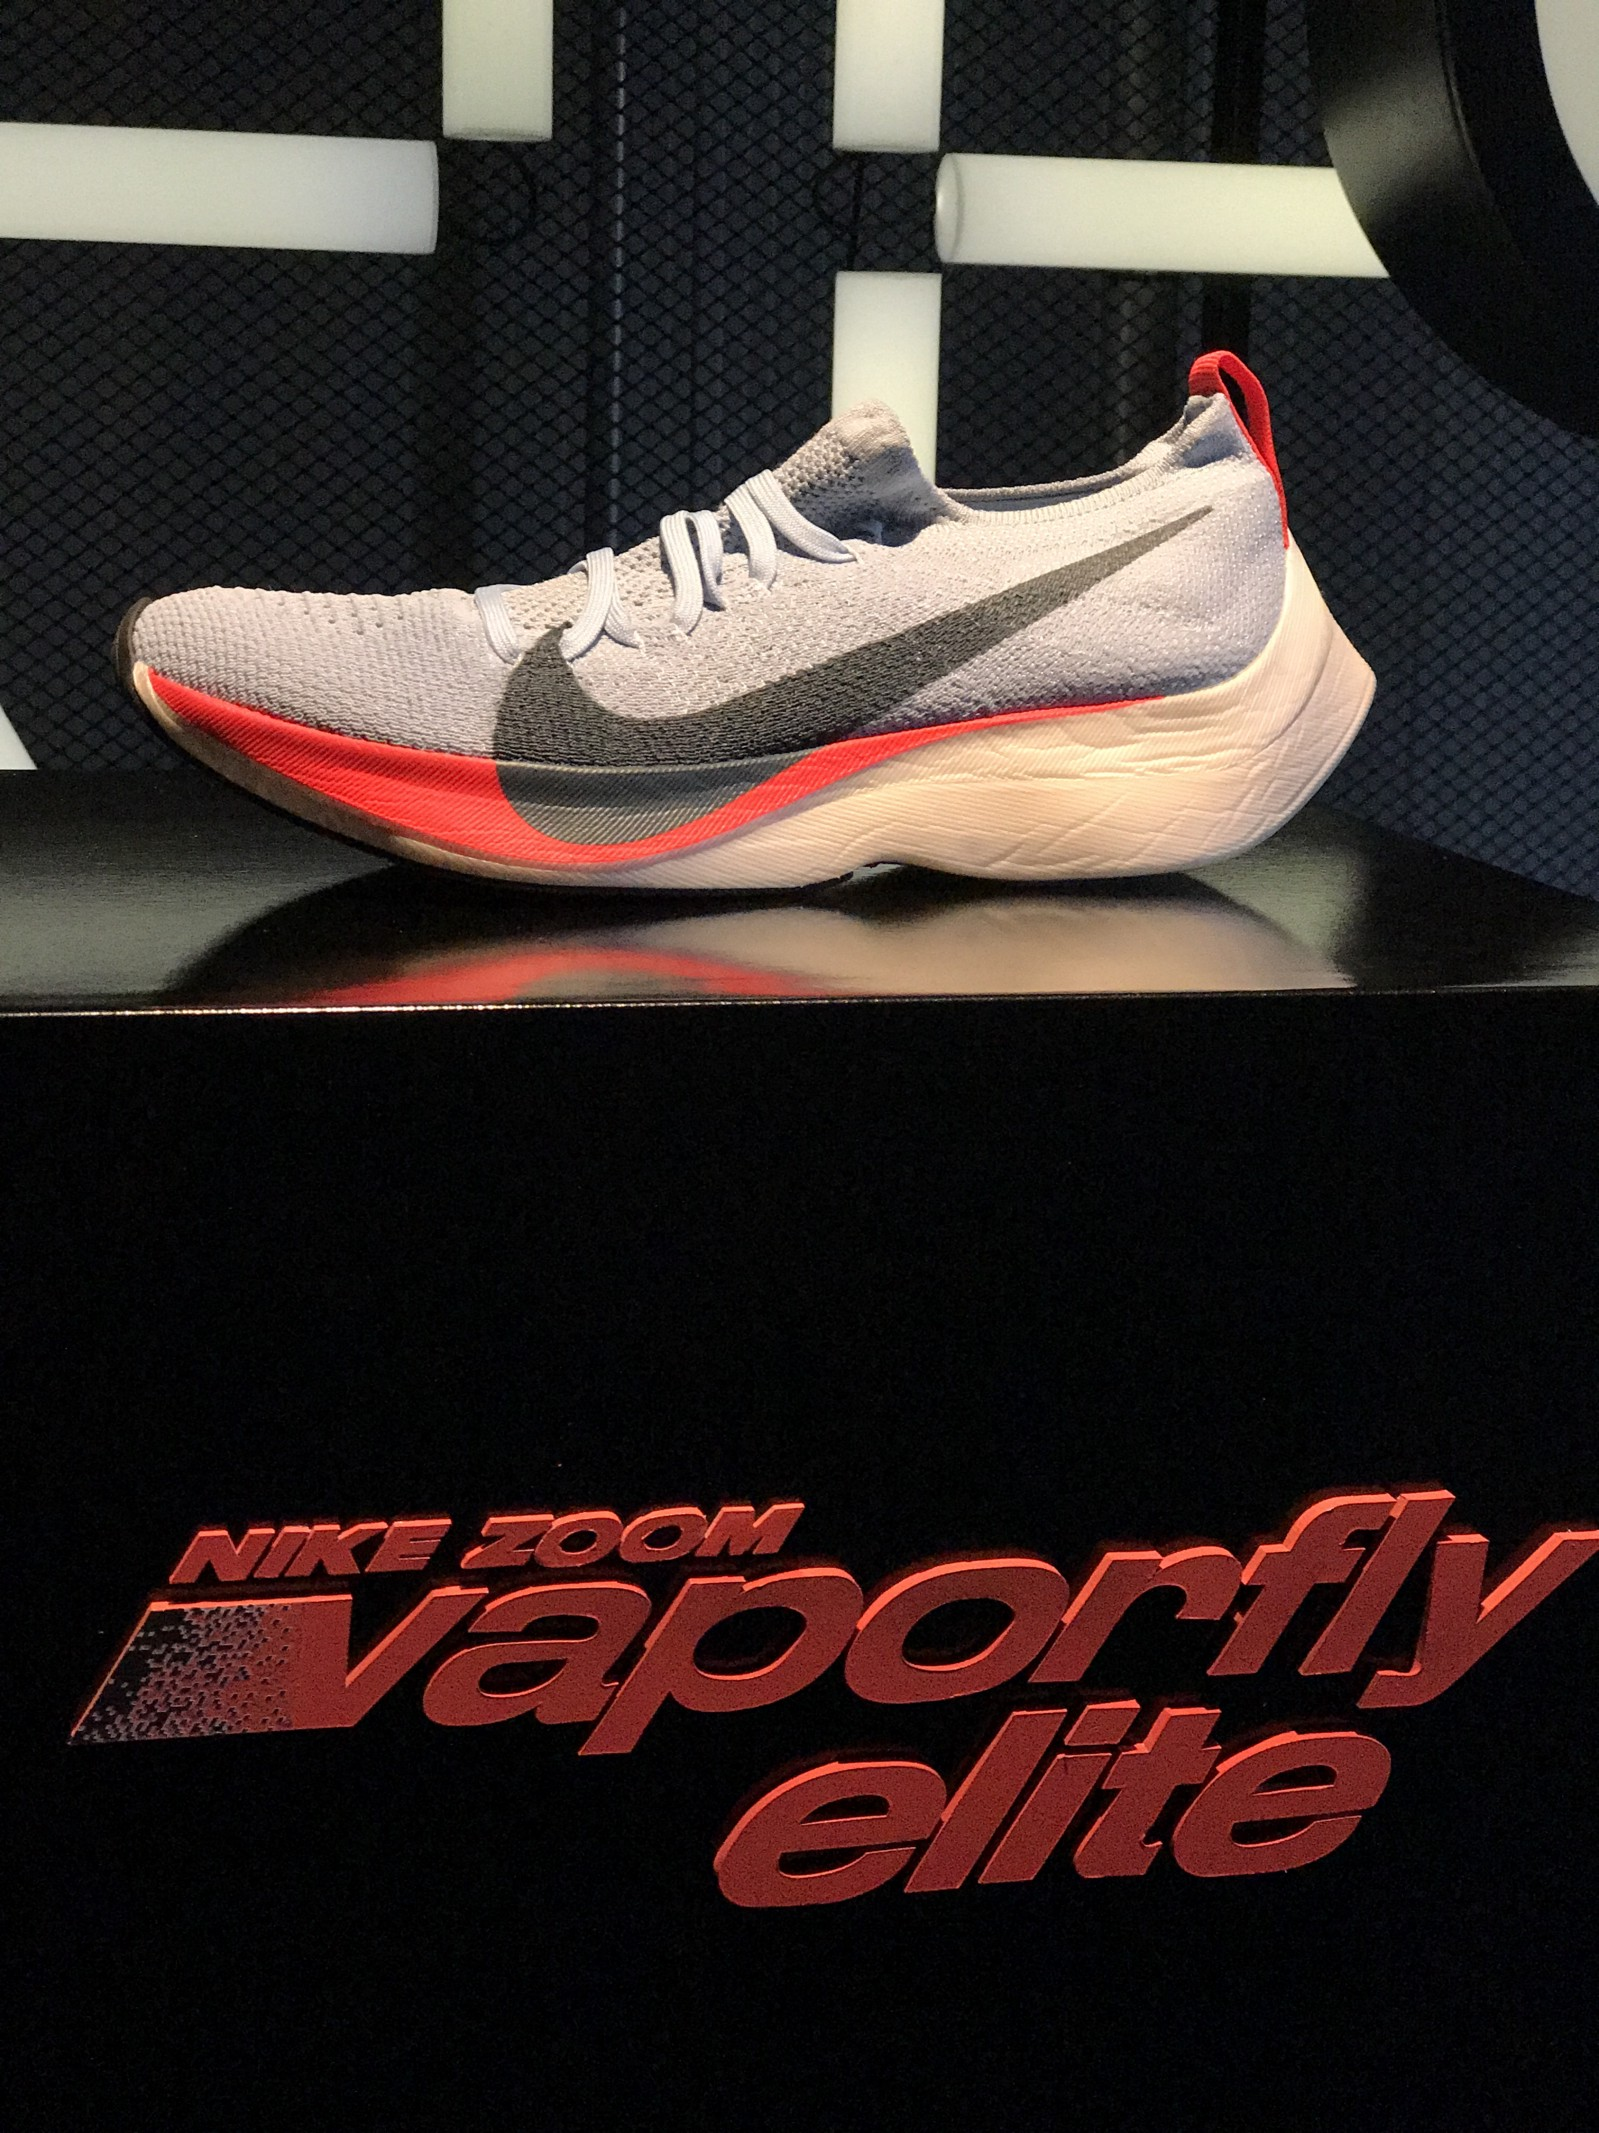 c352cec44ba0 The Nike Zoom Vaporfly Elite is what each of the three runners will compete  in. When Nike first started out to create this shoe they were too enamored  with ...